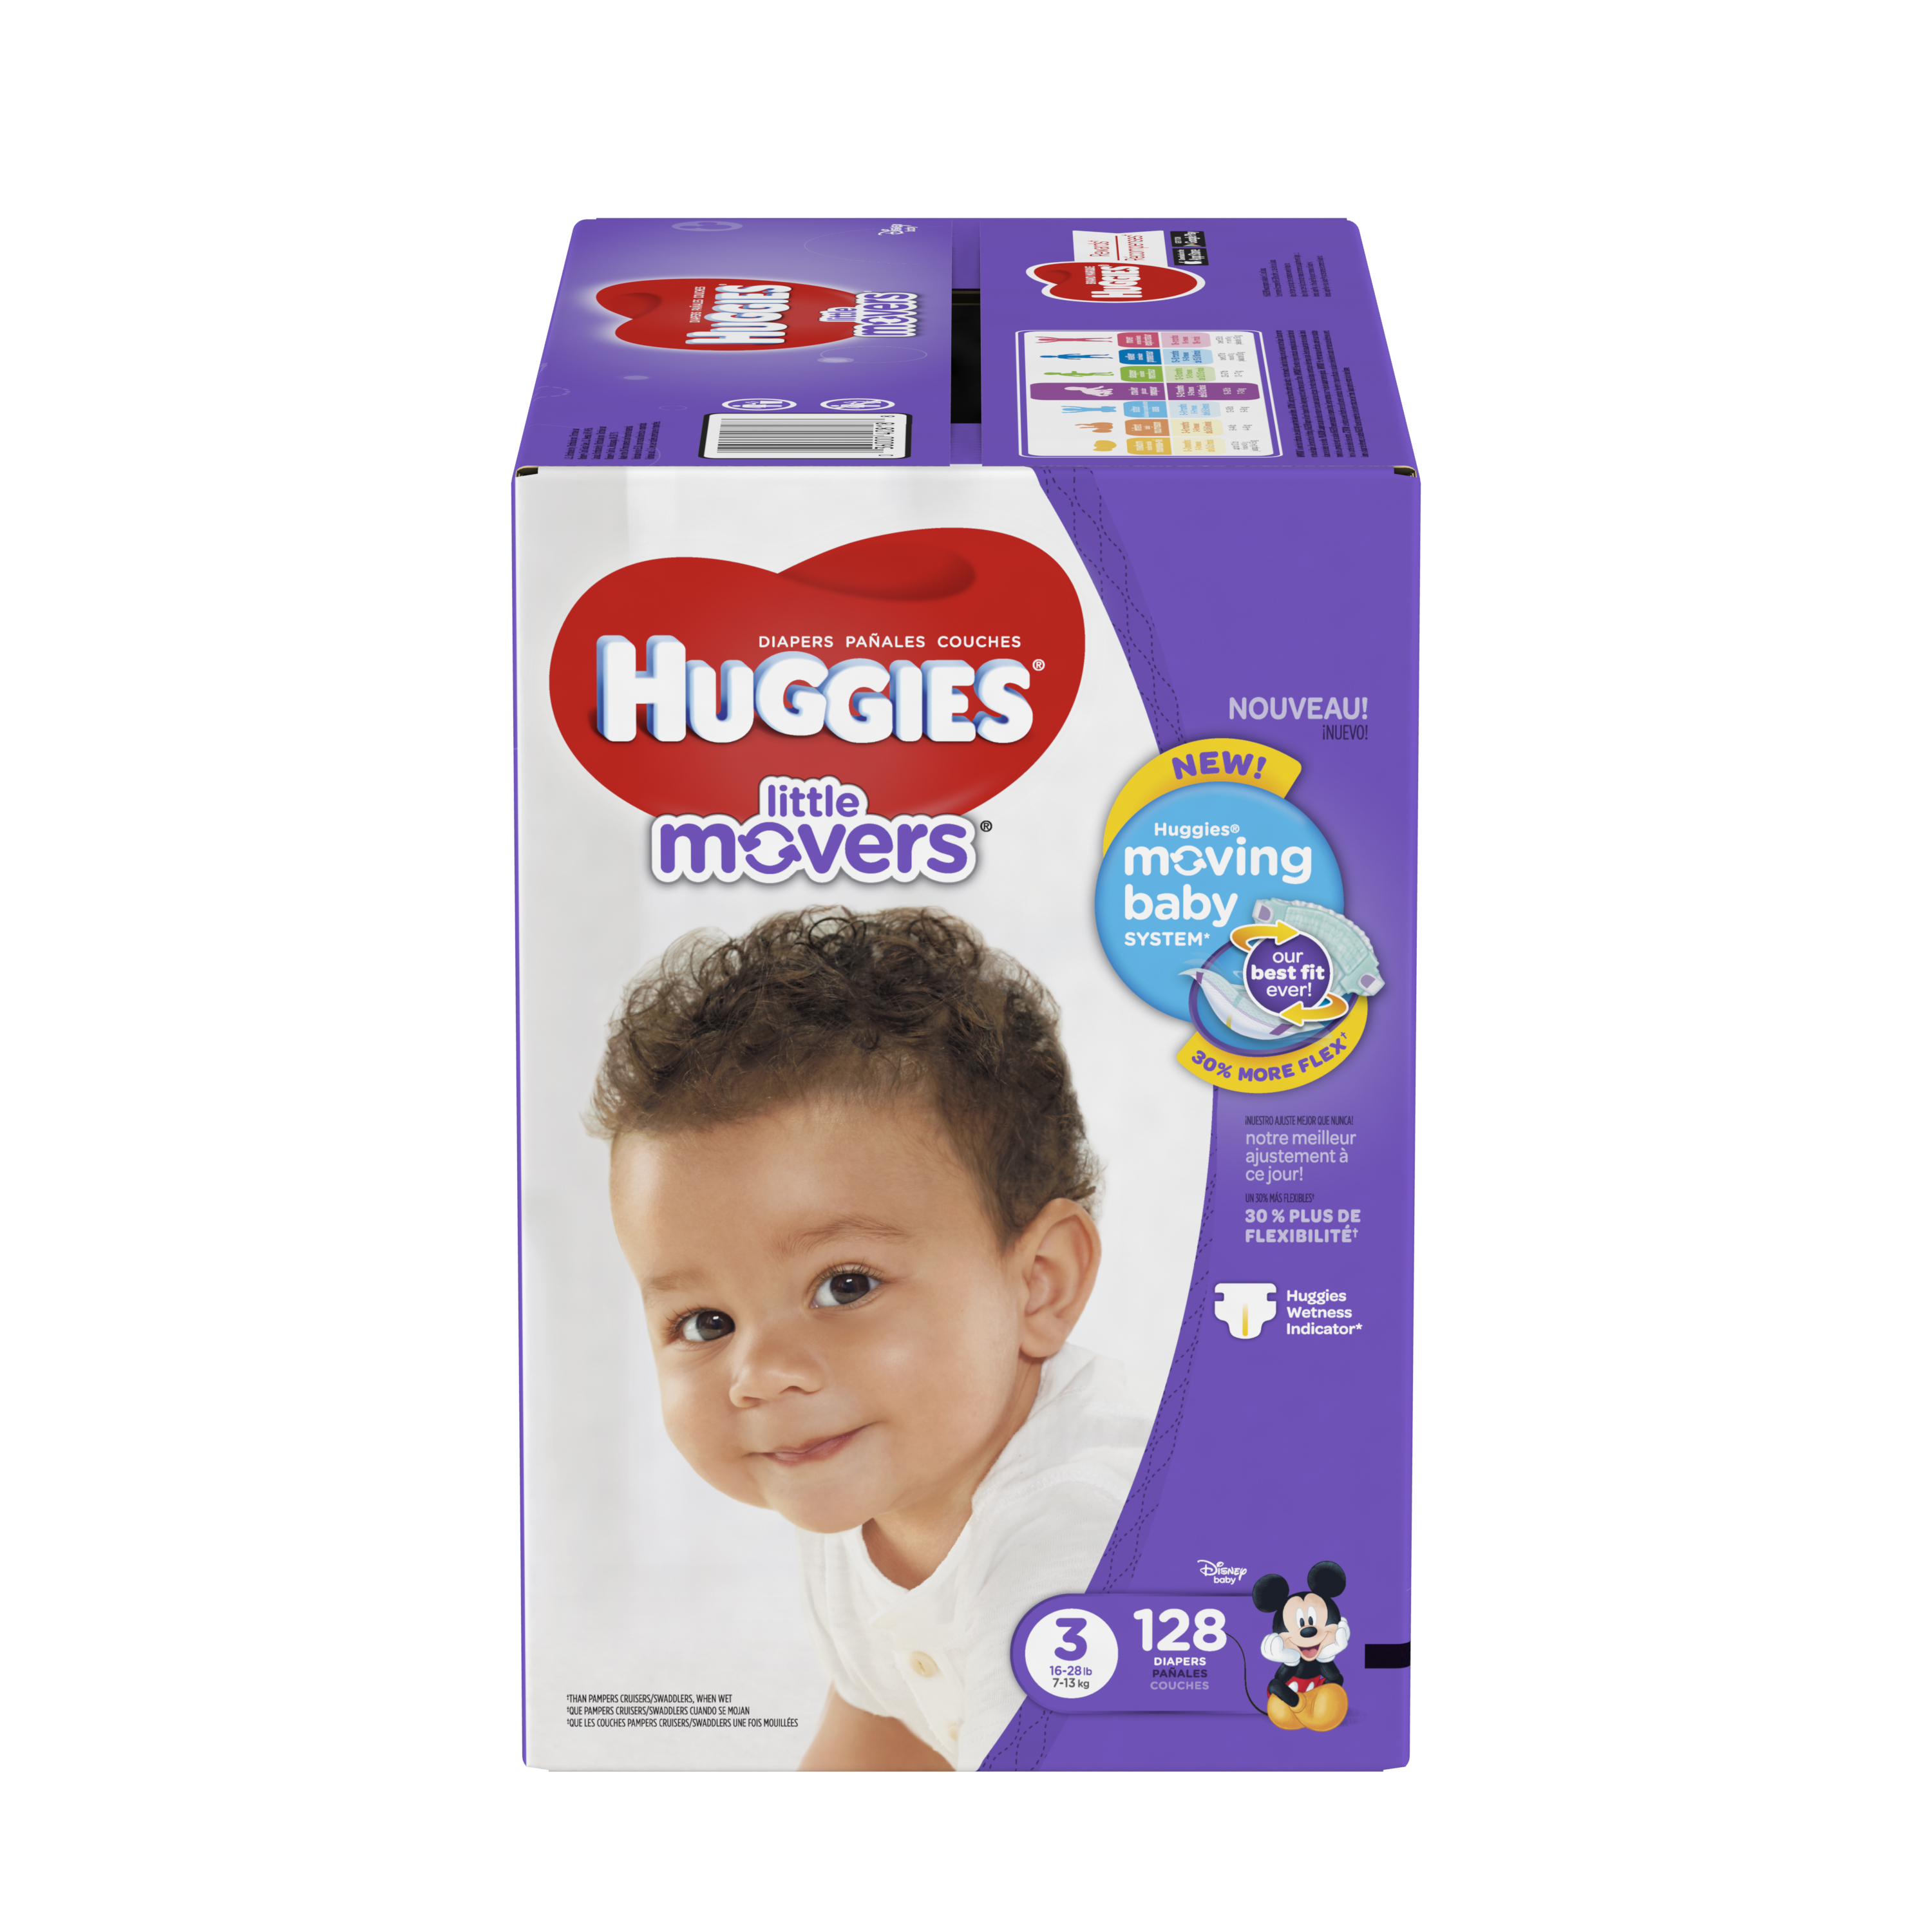 HUGGIES Little Movers Diapers, Size 3, 128 Diapers